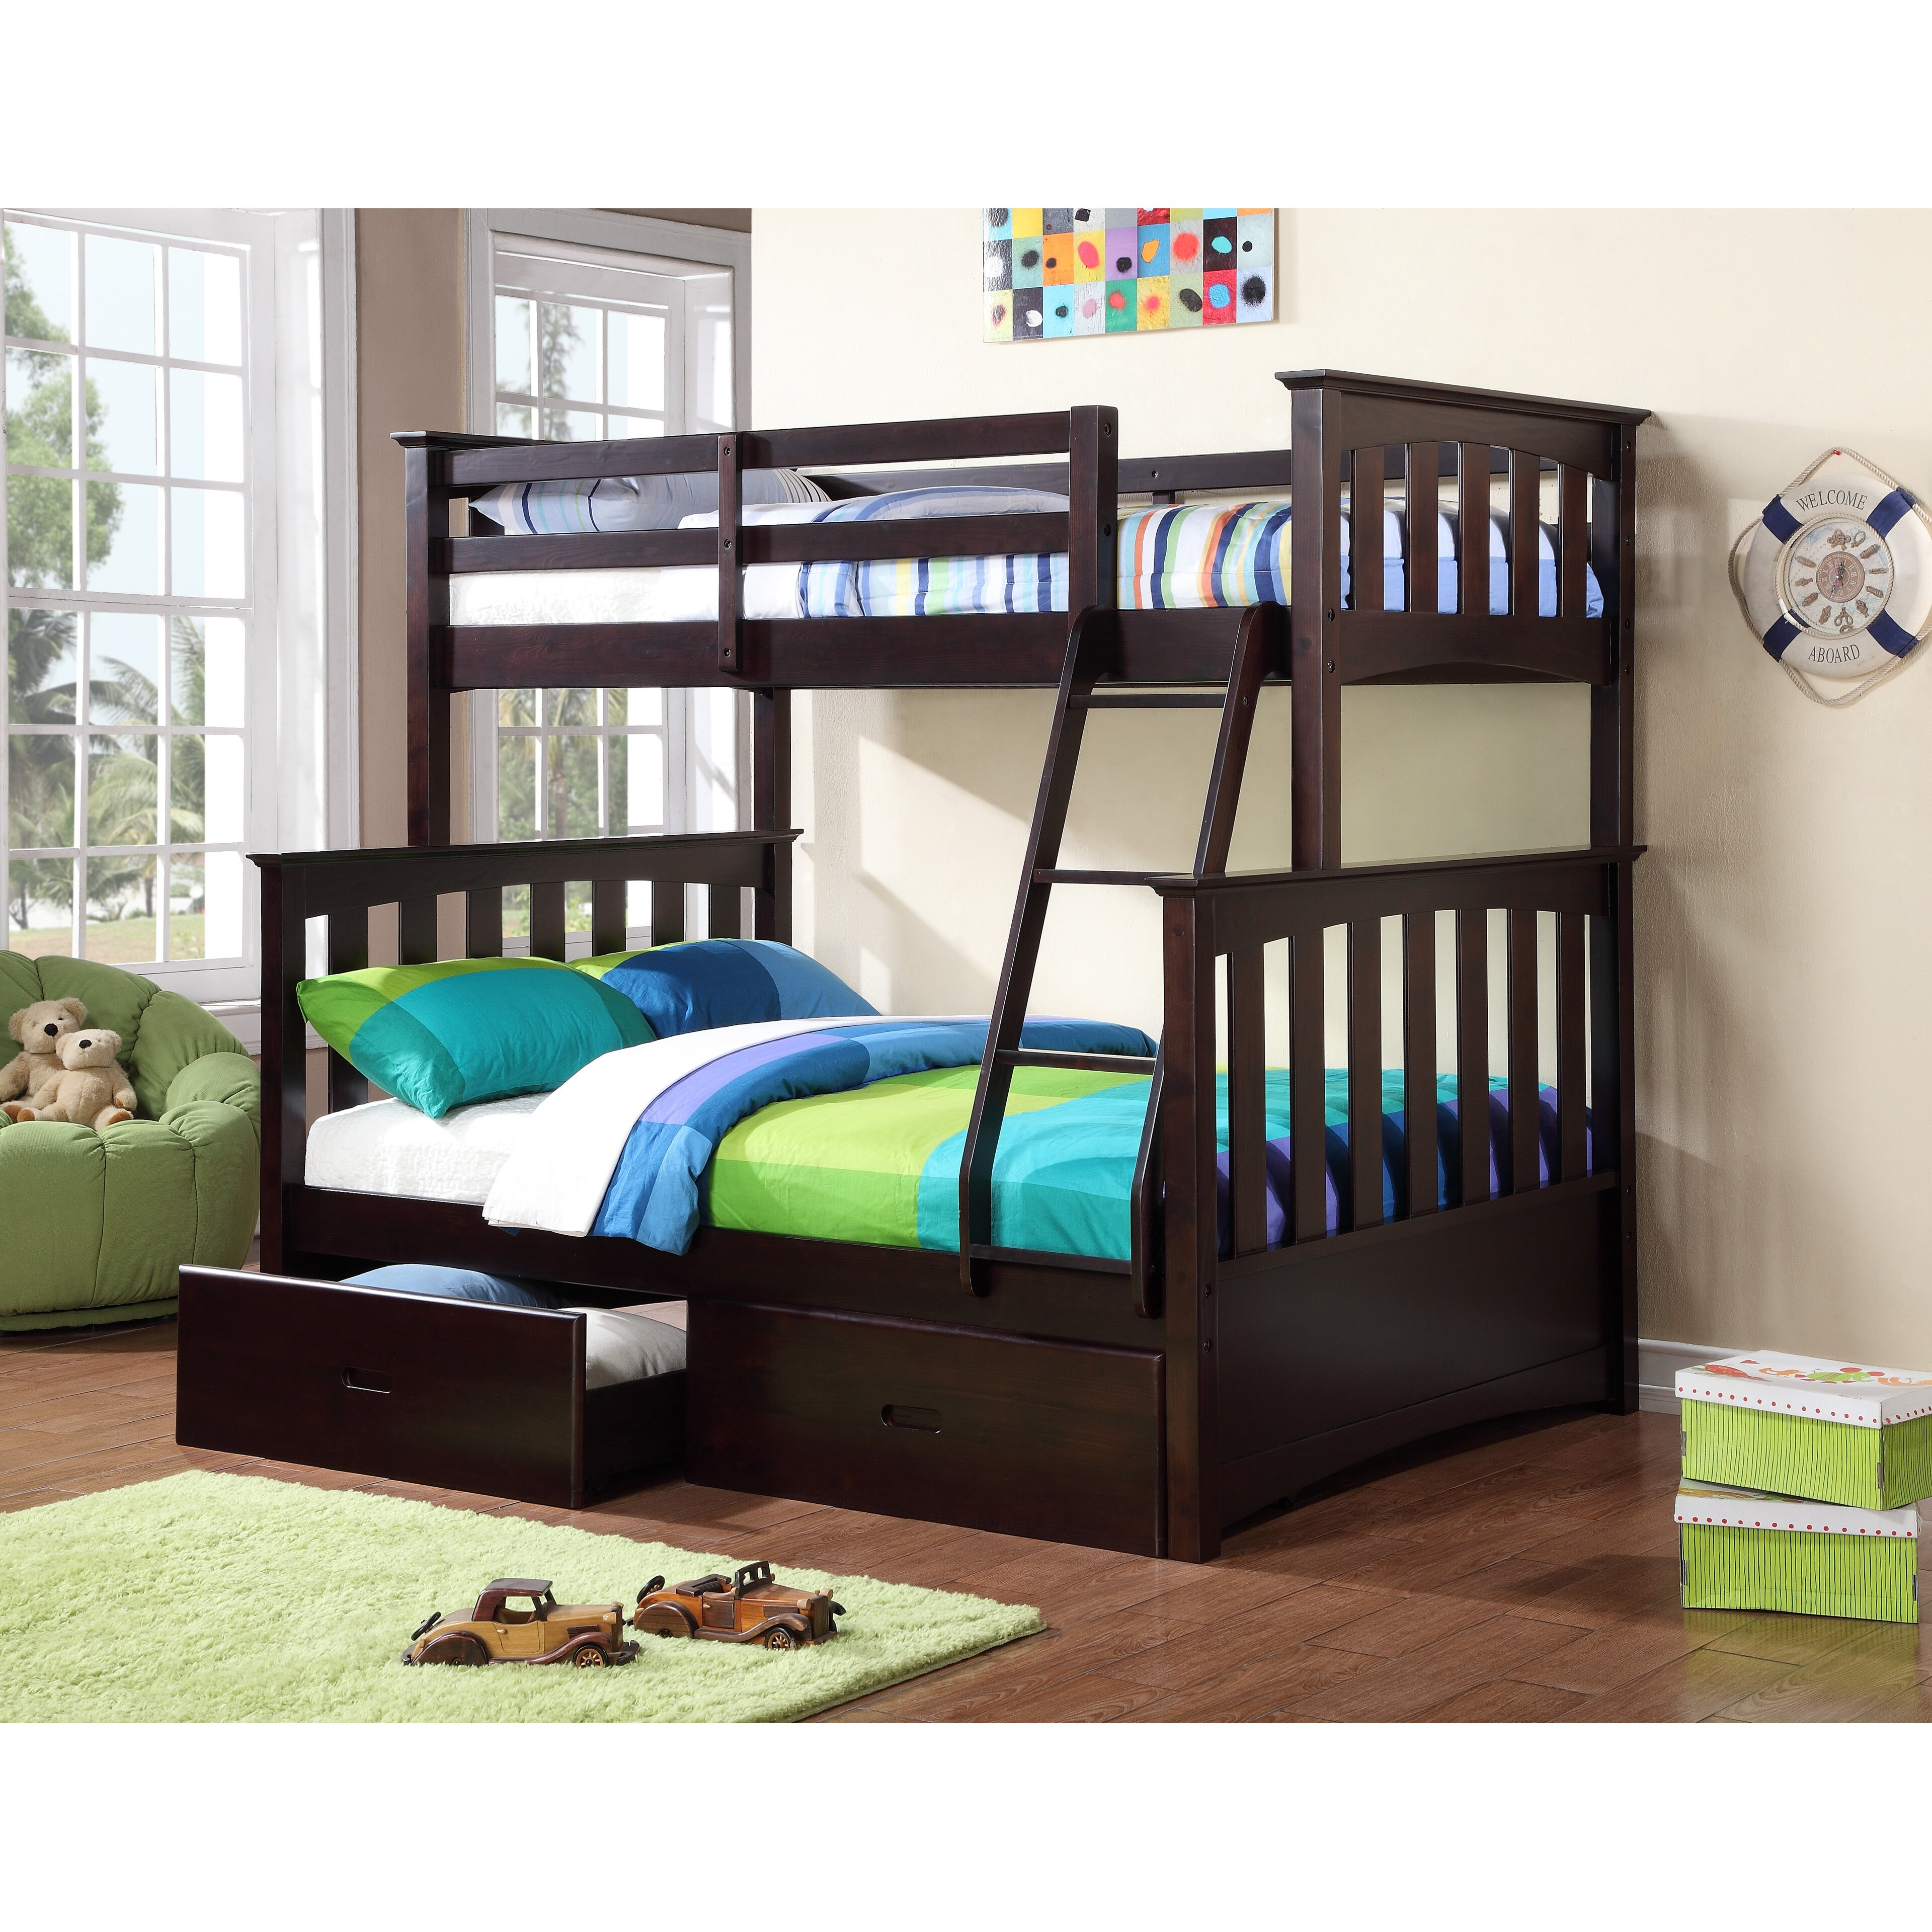 Williams Import Co Kira Twin over Full Bunk Bed with